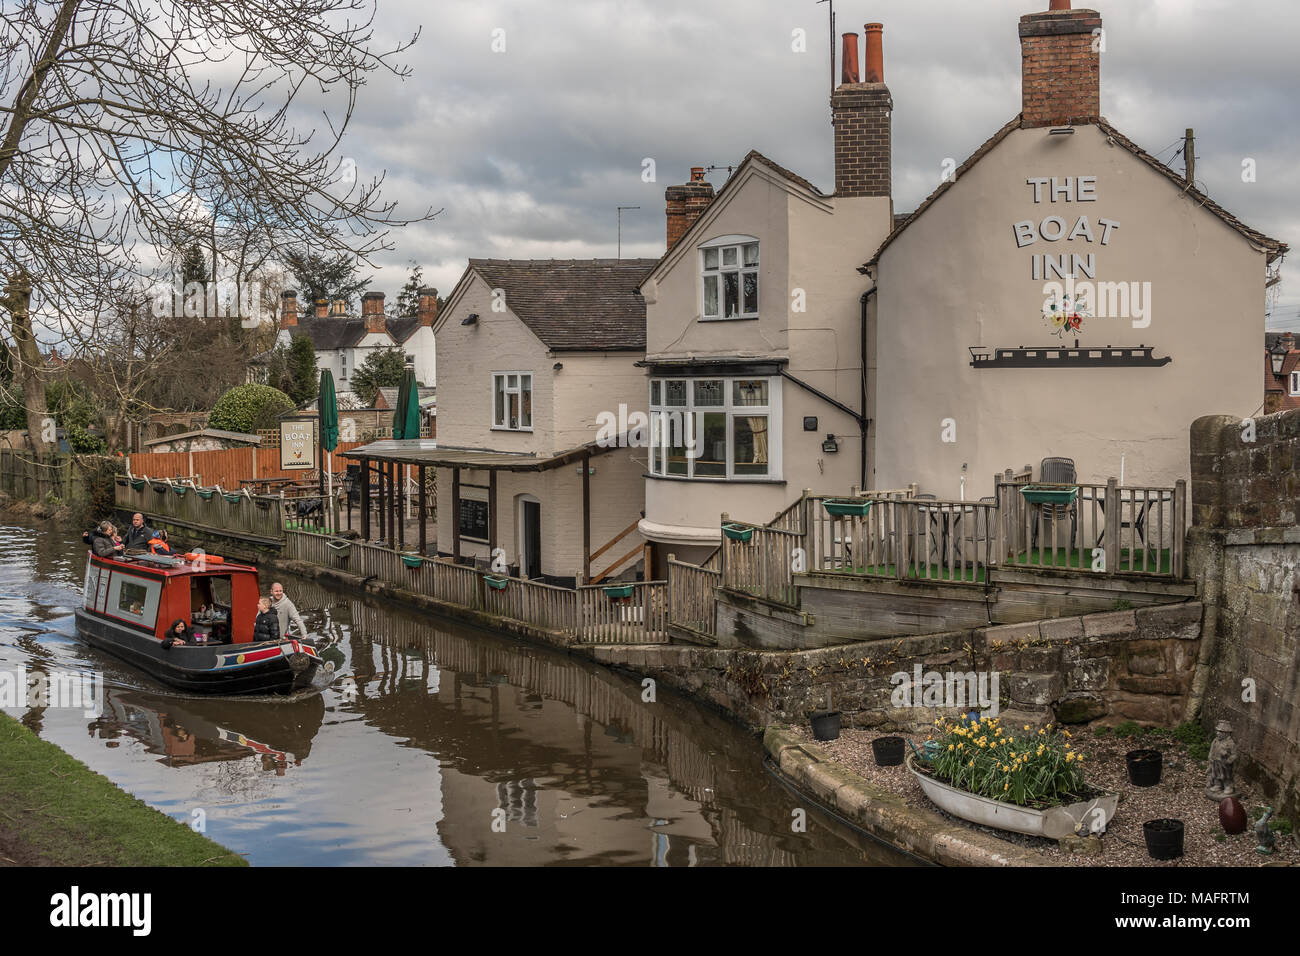 Gnosall, Staffordshire, UK - April 1st 2018 - A canal boat with people enjoy a trip in a narrowboat passing a canal side pub / inn with reflections in - Stock Image